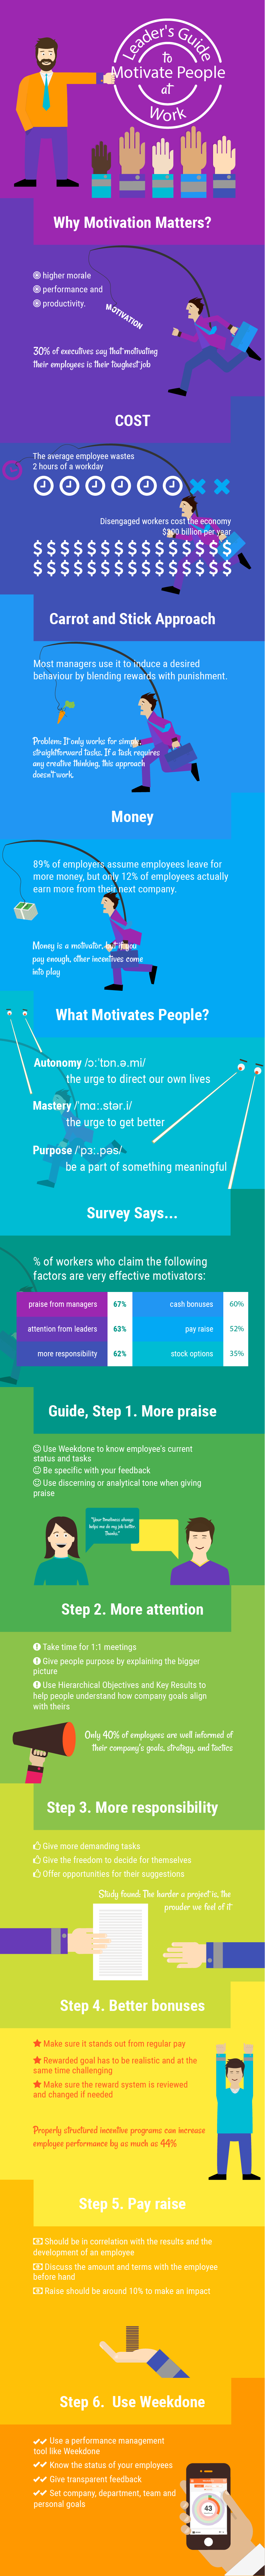 Leader's Guide to Motivate People at Work Infographic Image